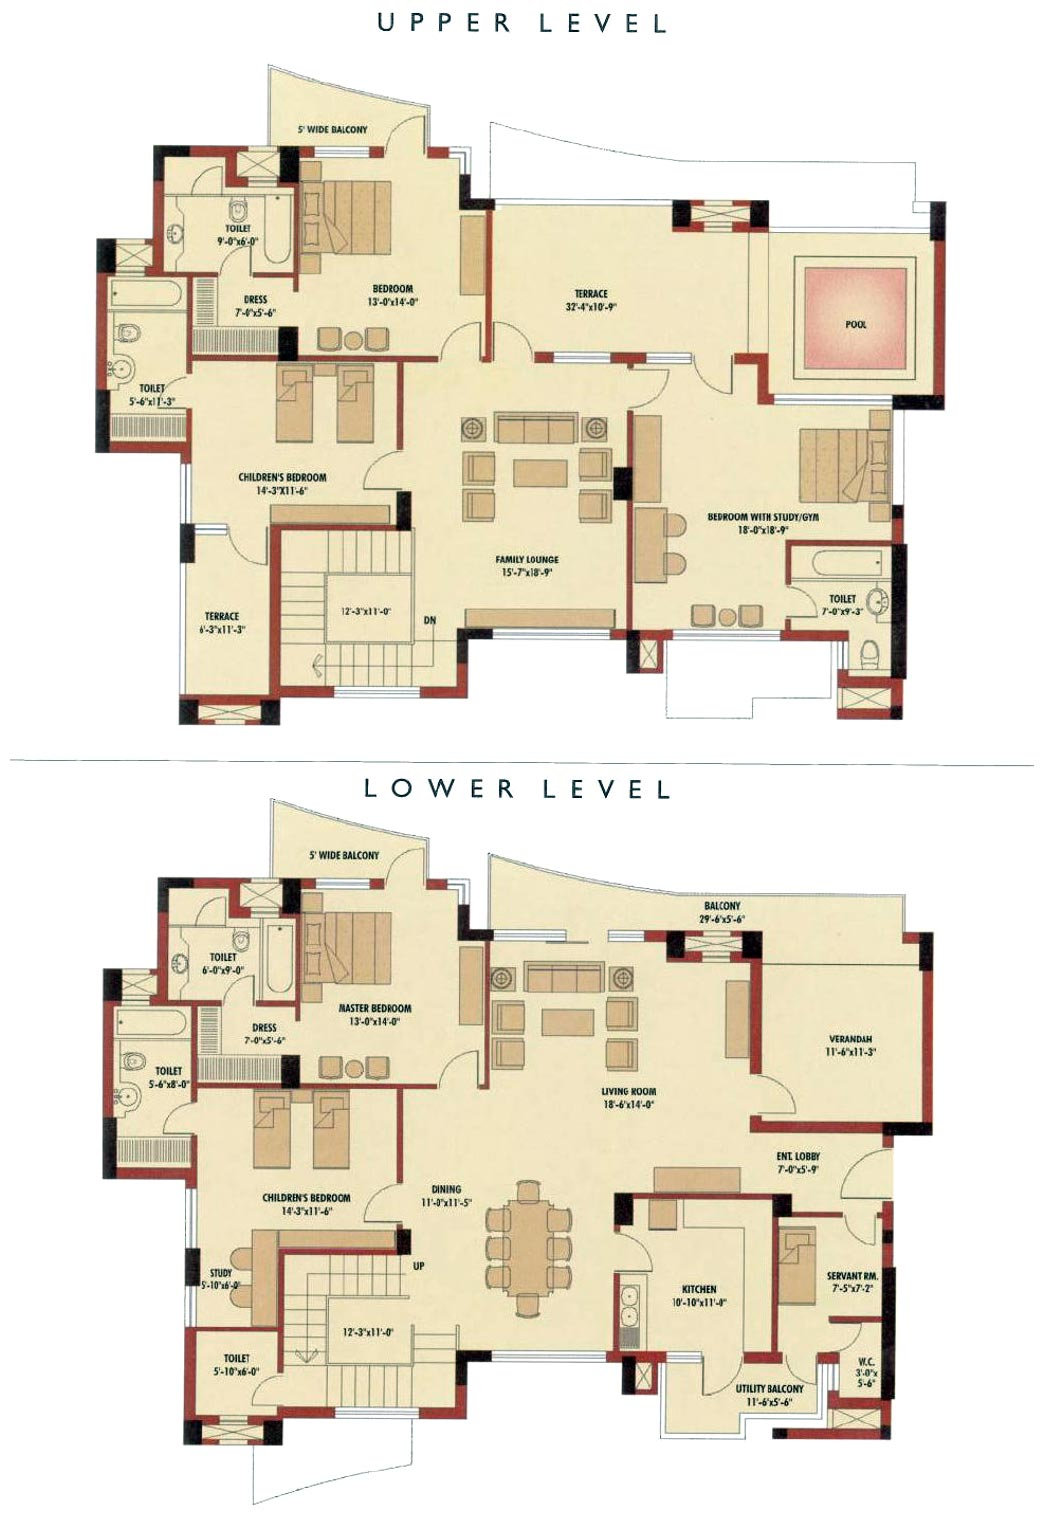 4 Bedroom Duplex Floor Garage Plan Floor Plans